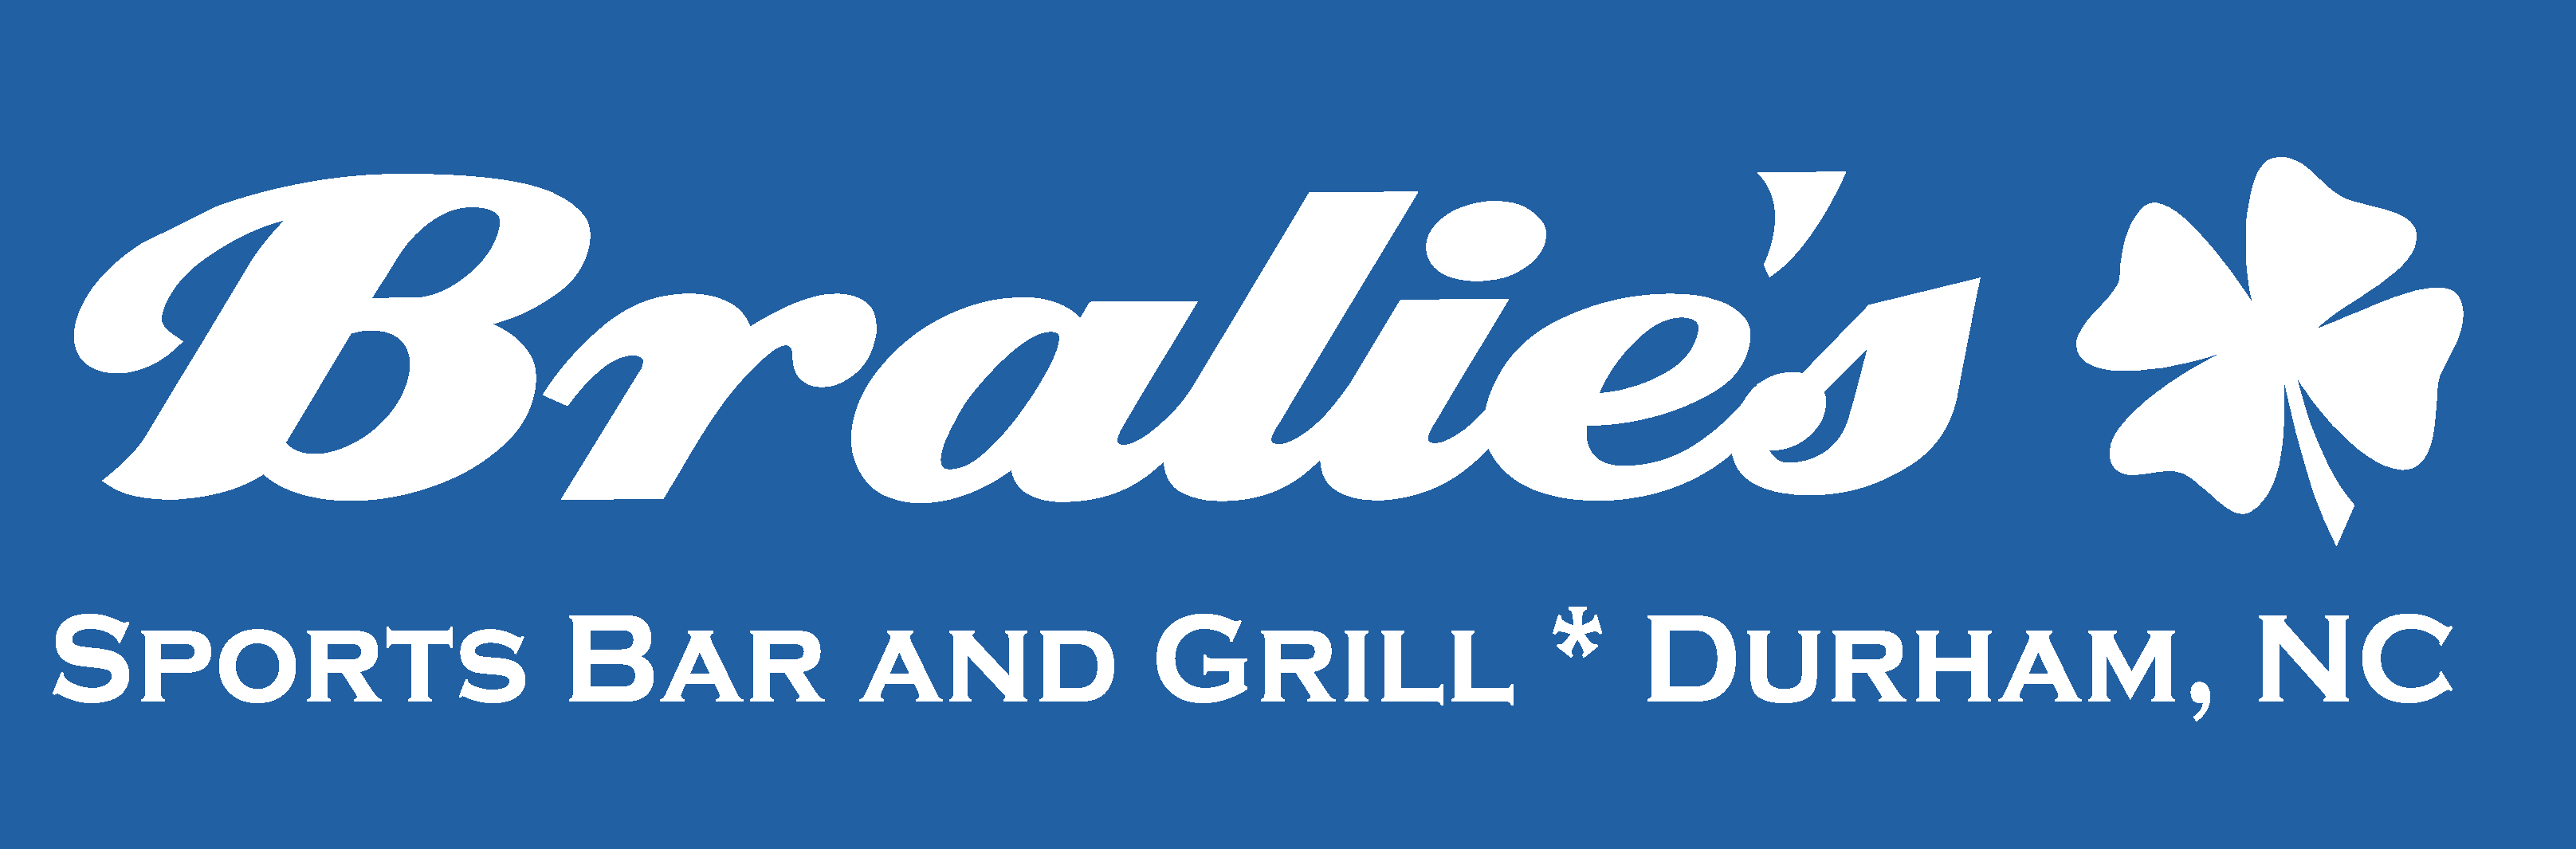 Bralie's Sports Bar and Grill